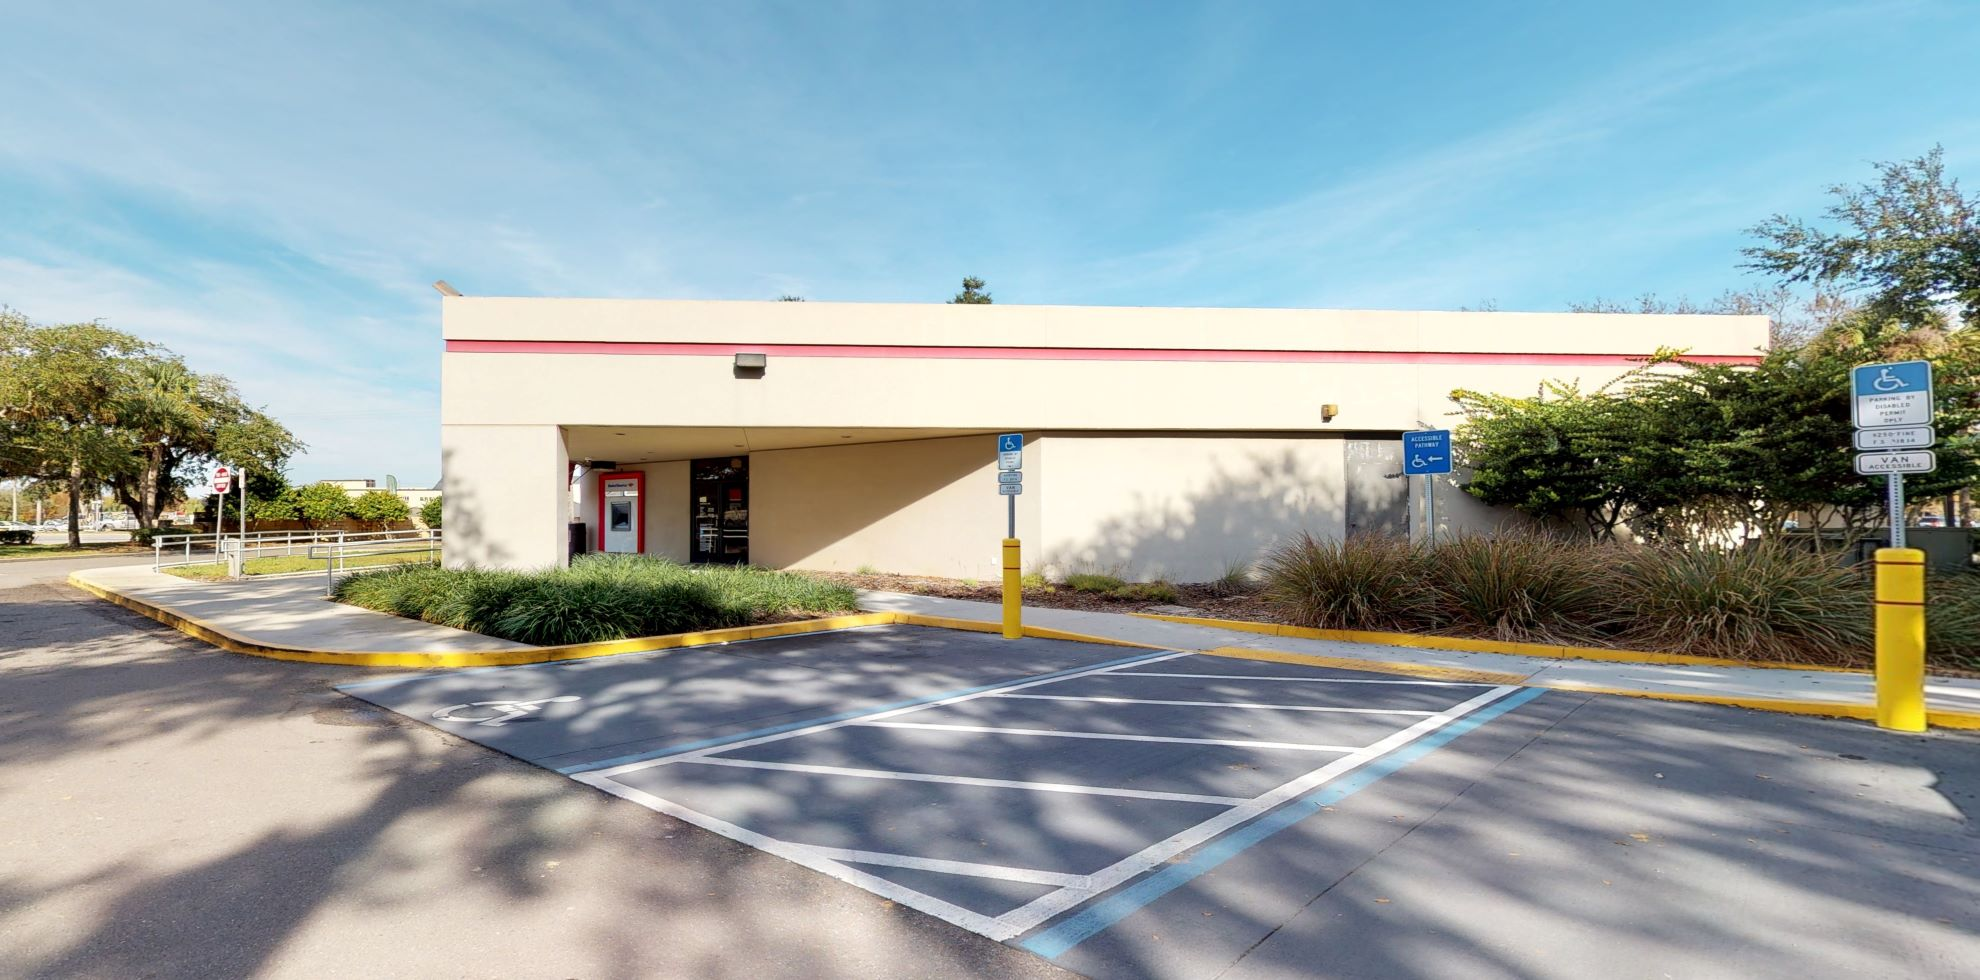 Bank of America financial center with walk-up ATM | 1880 State Road 44, New Smyrna Beach, FL 32168